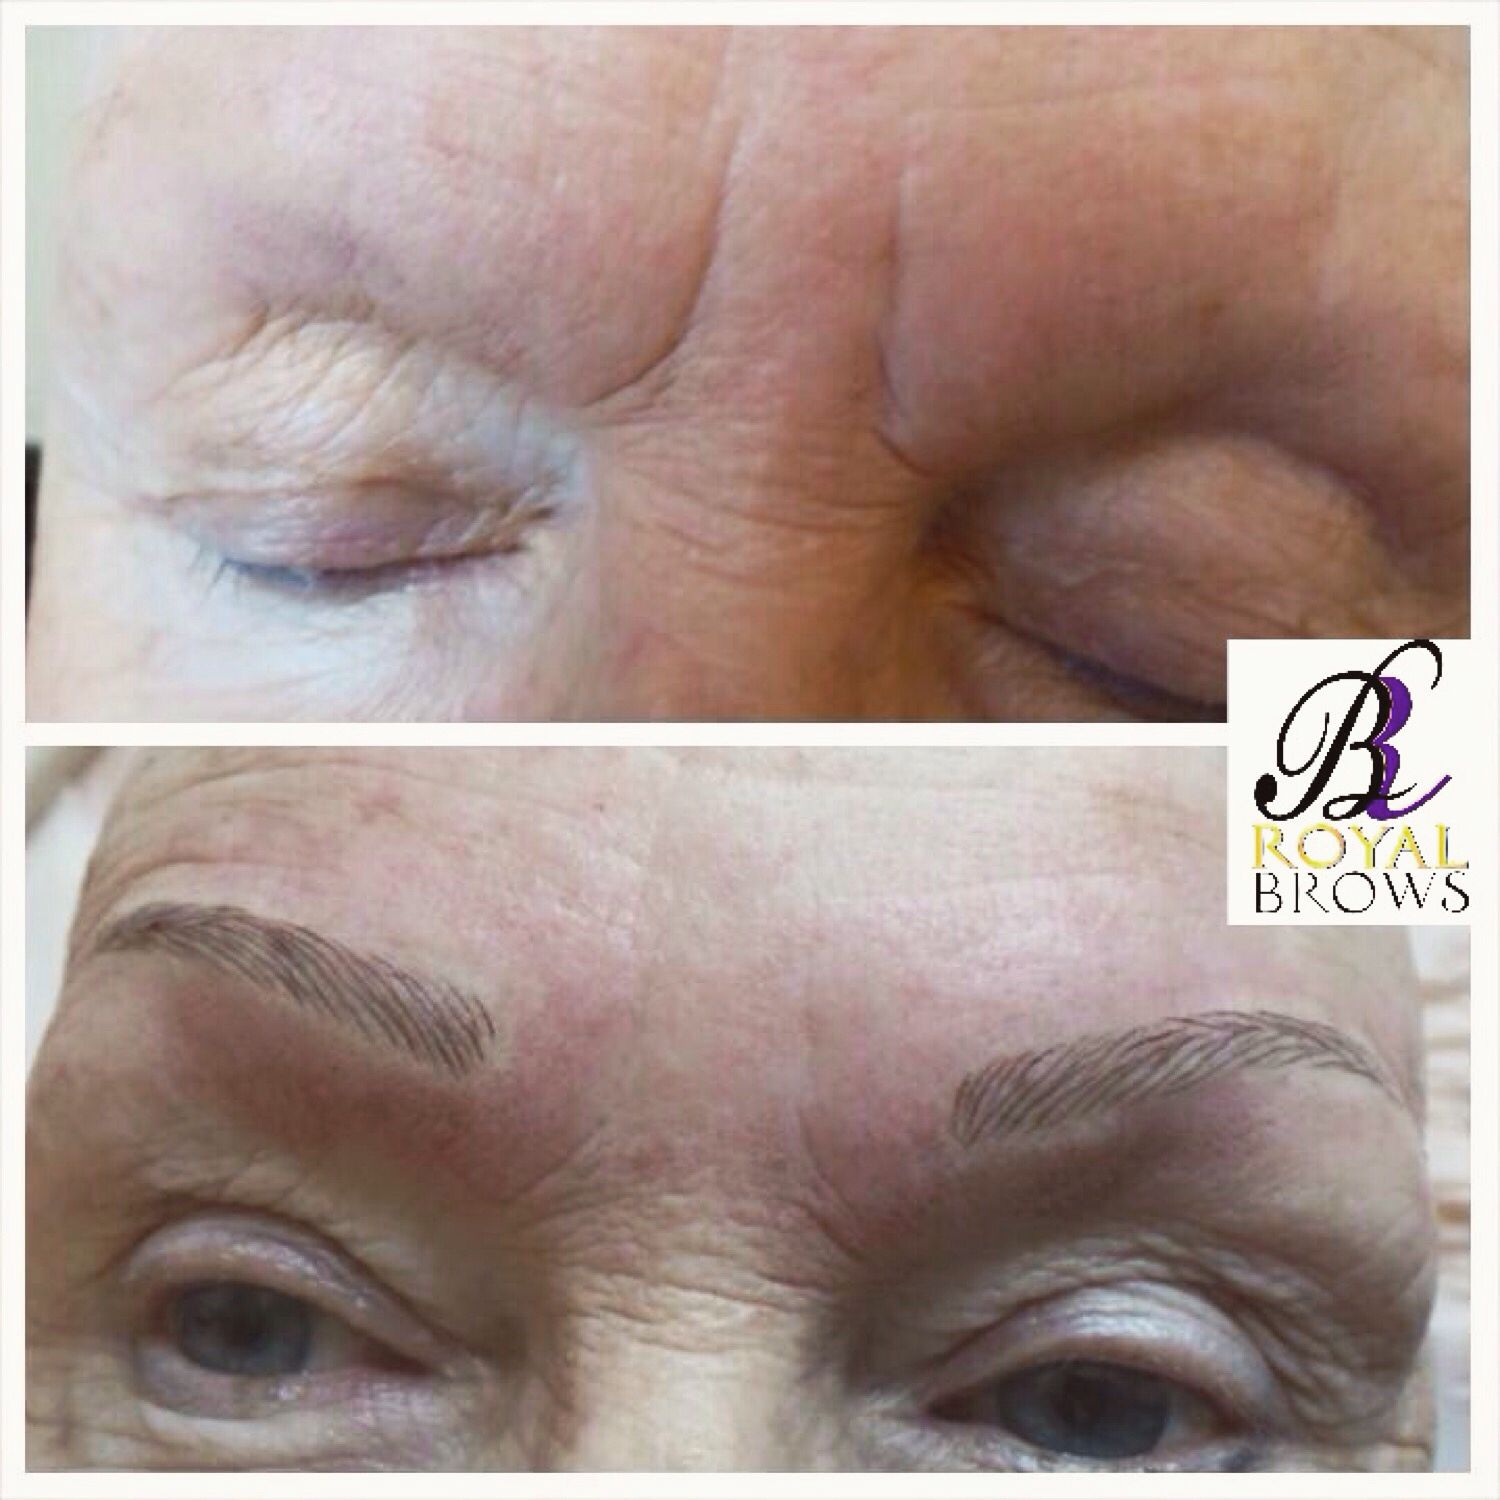 A Before And After Of Royal Brow 3d Eyebrow Embroidery Treatment By